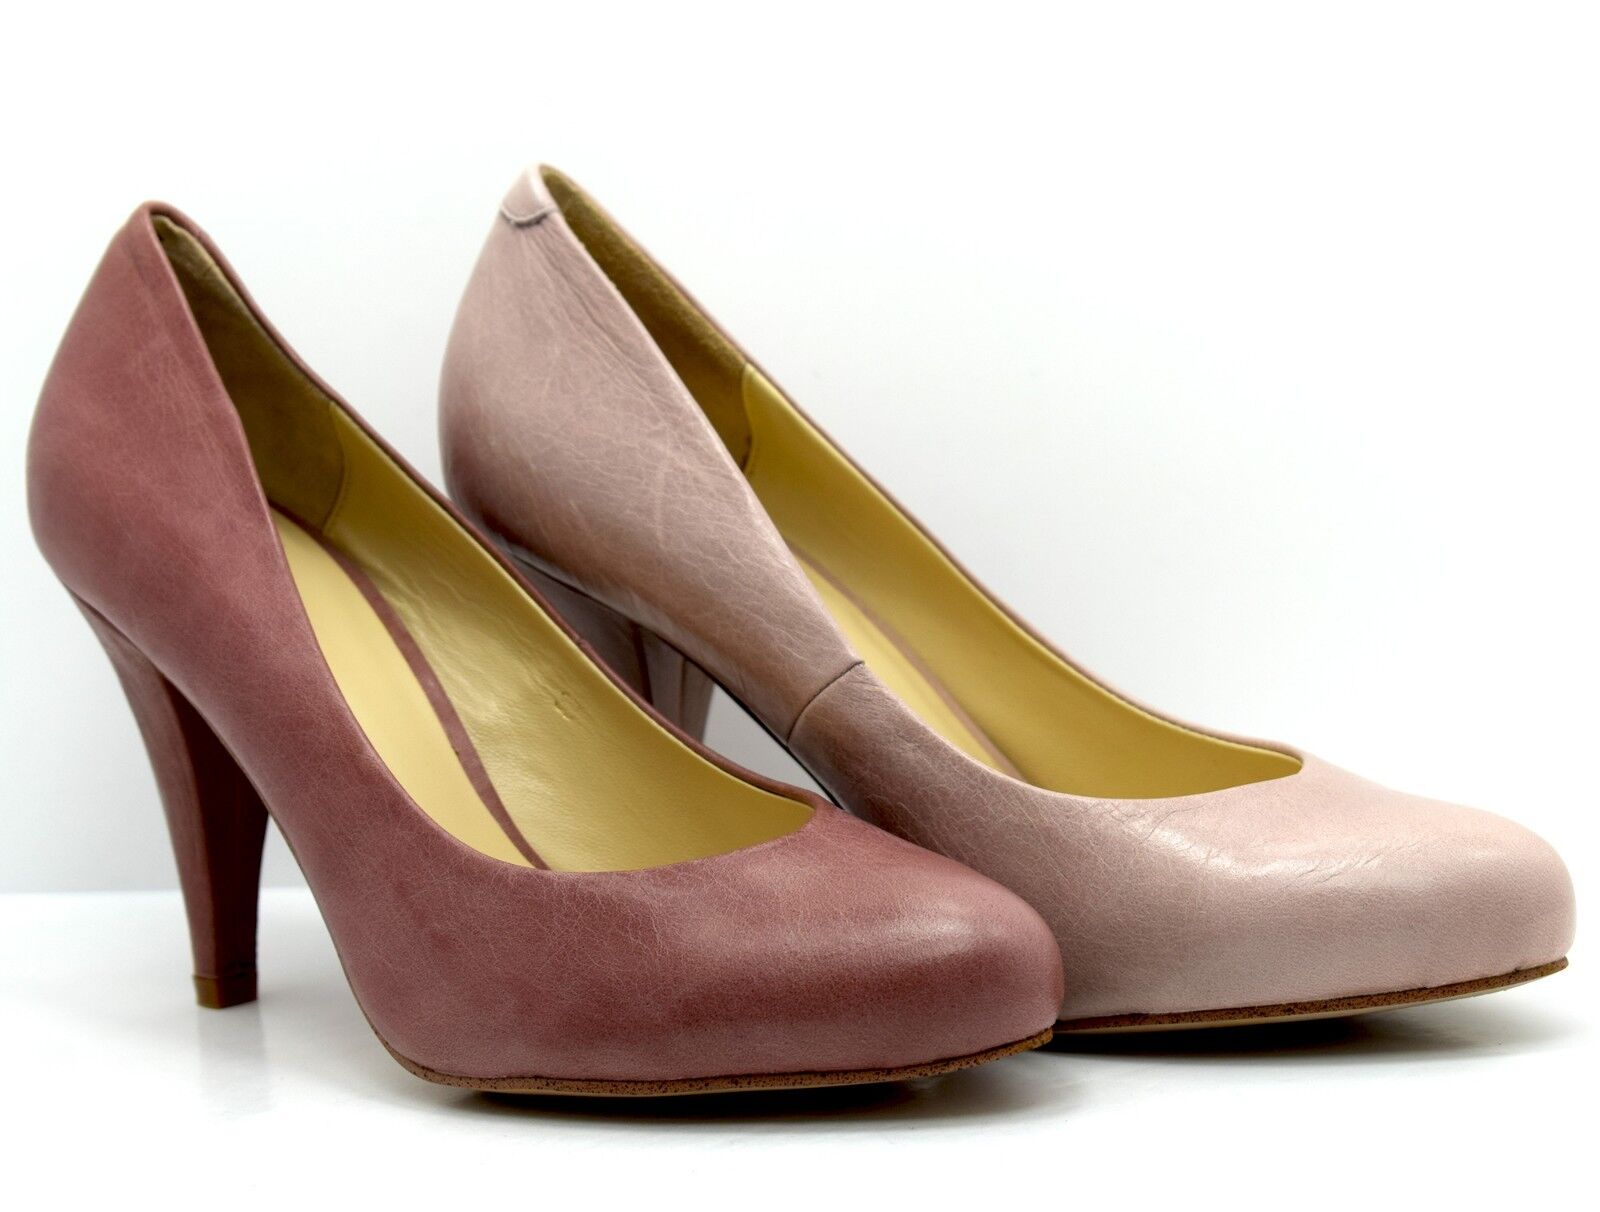 Noe Womens High Heel Leather Pumps Court shoes Multiple Sizes and Colours